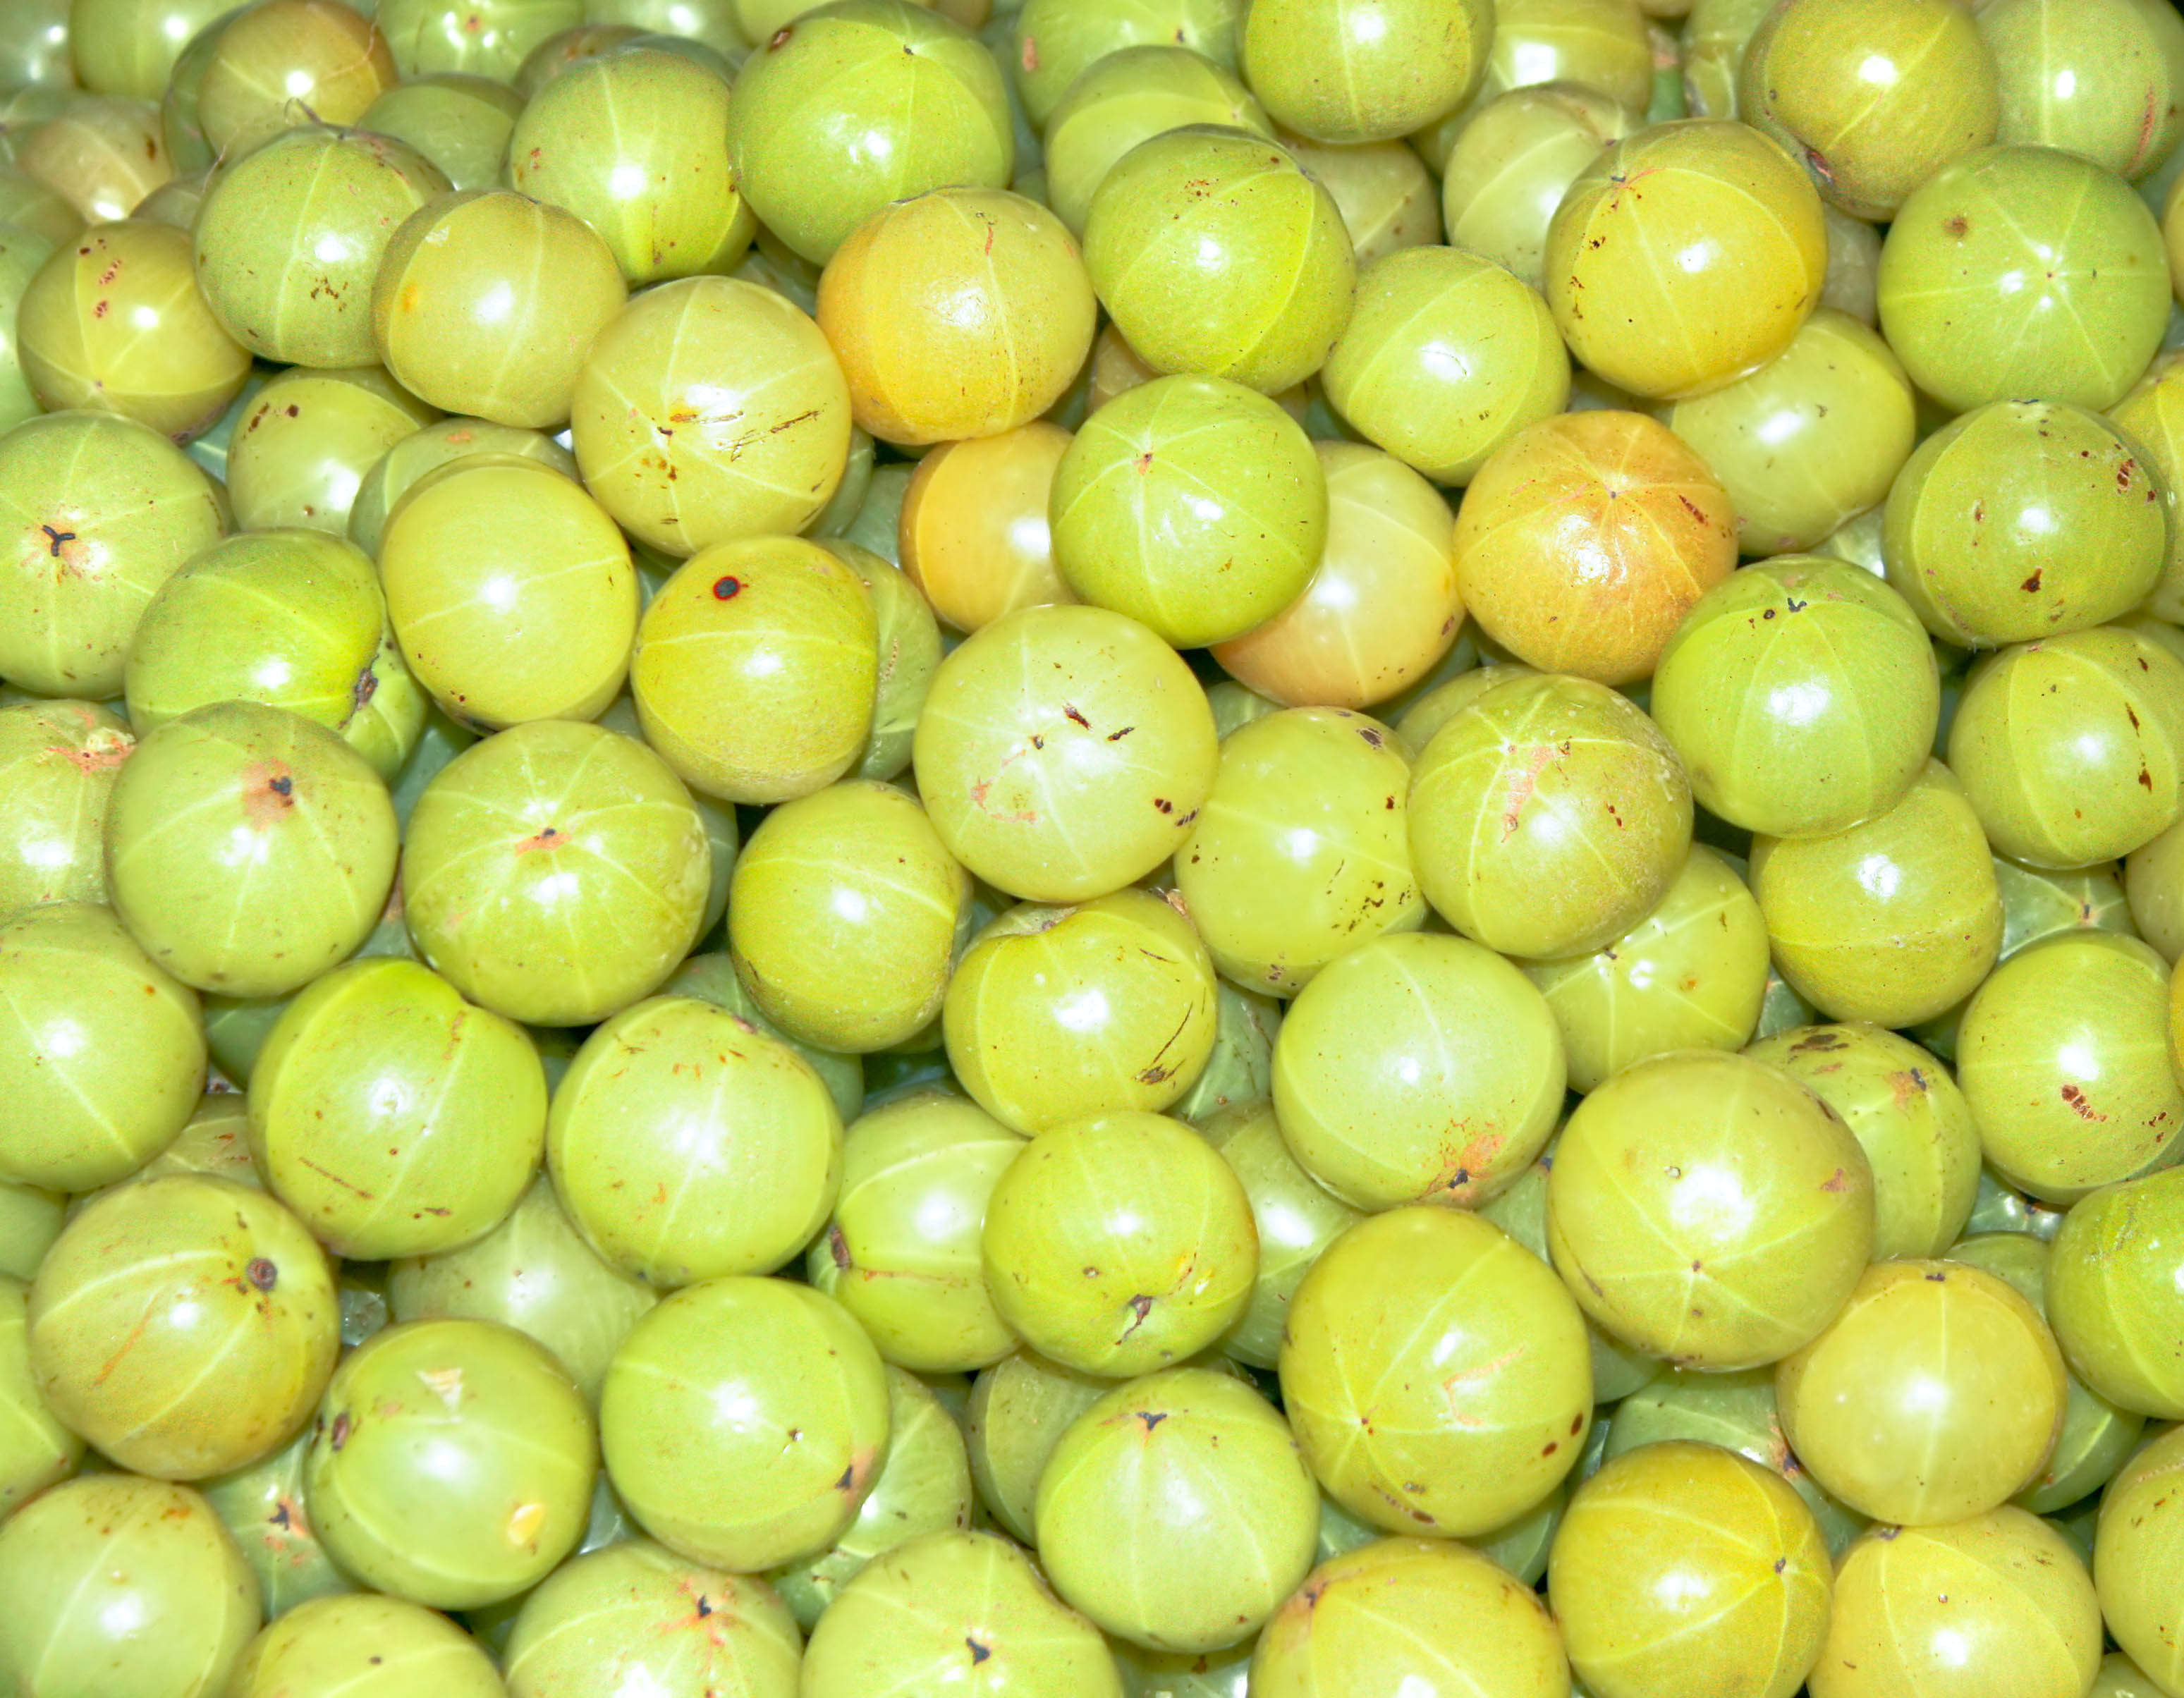 The amla extract: profiling the berry landscape